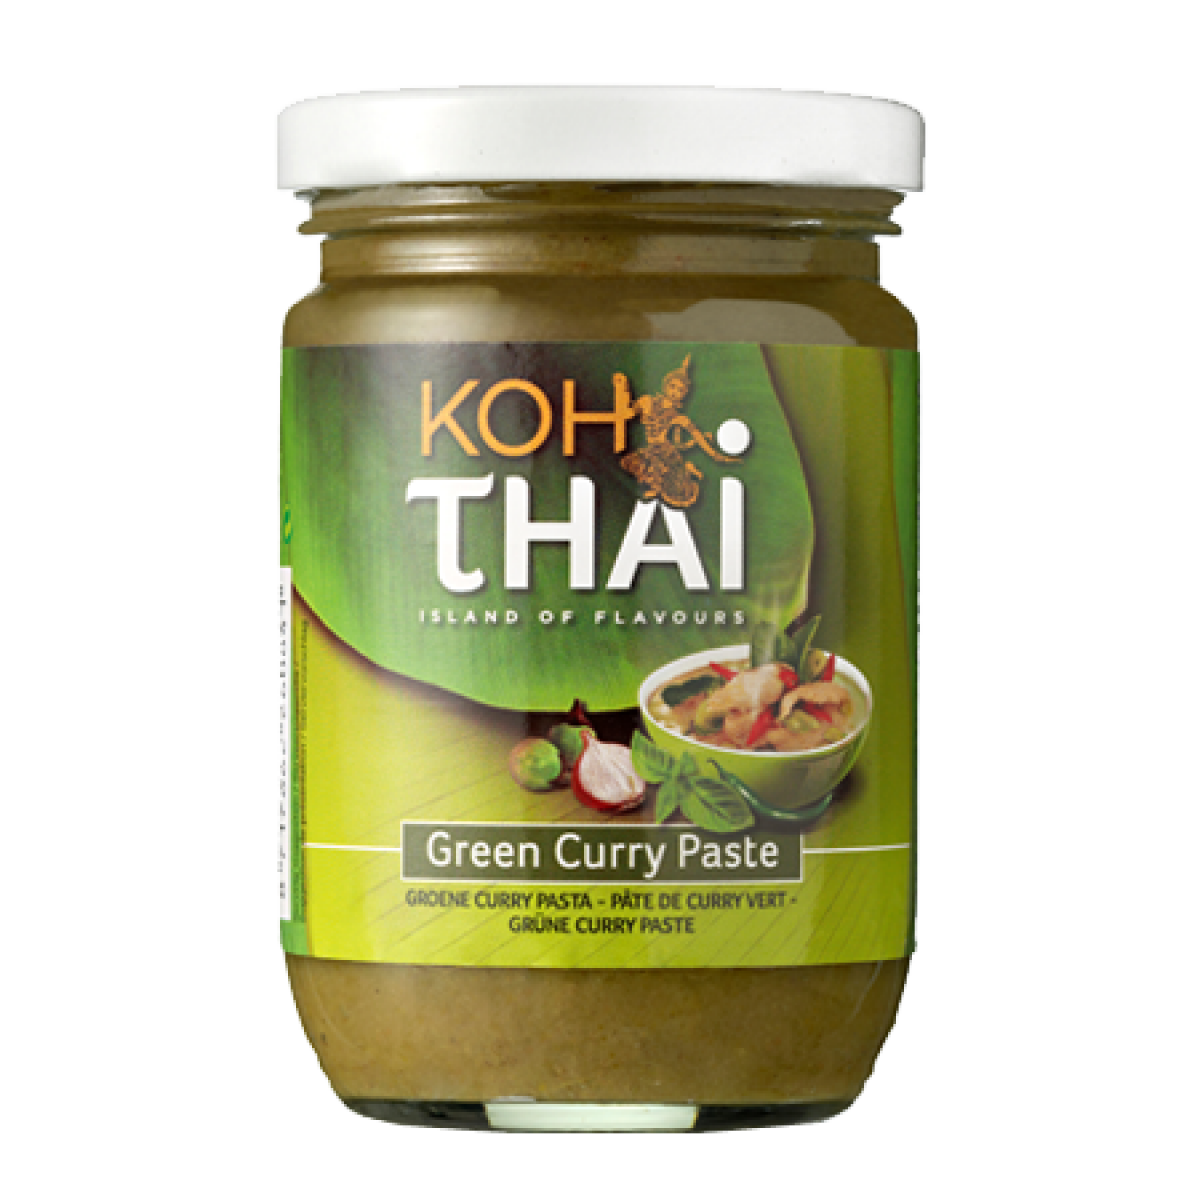 Green Curry Paste (pot)